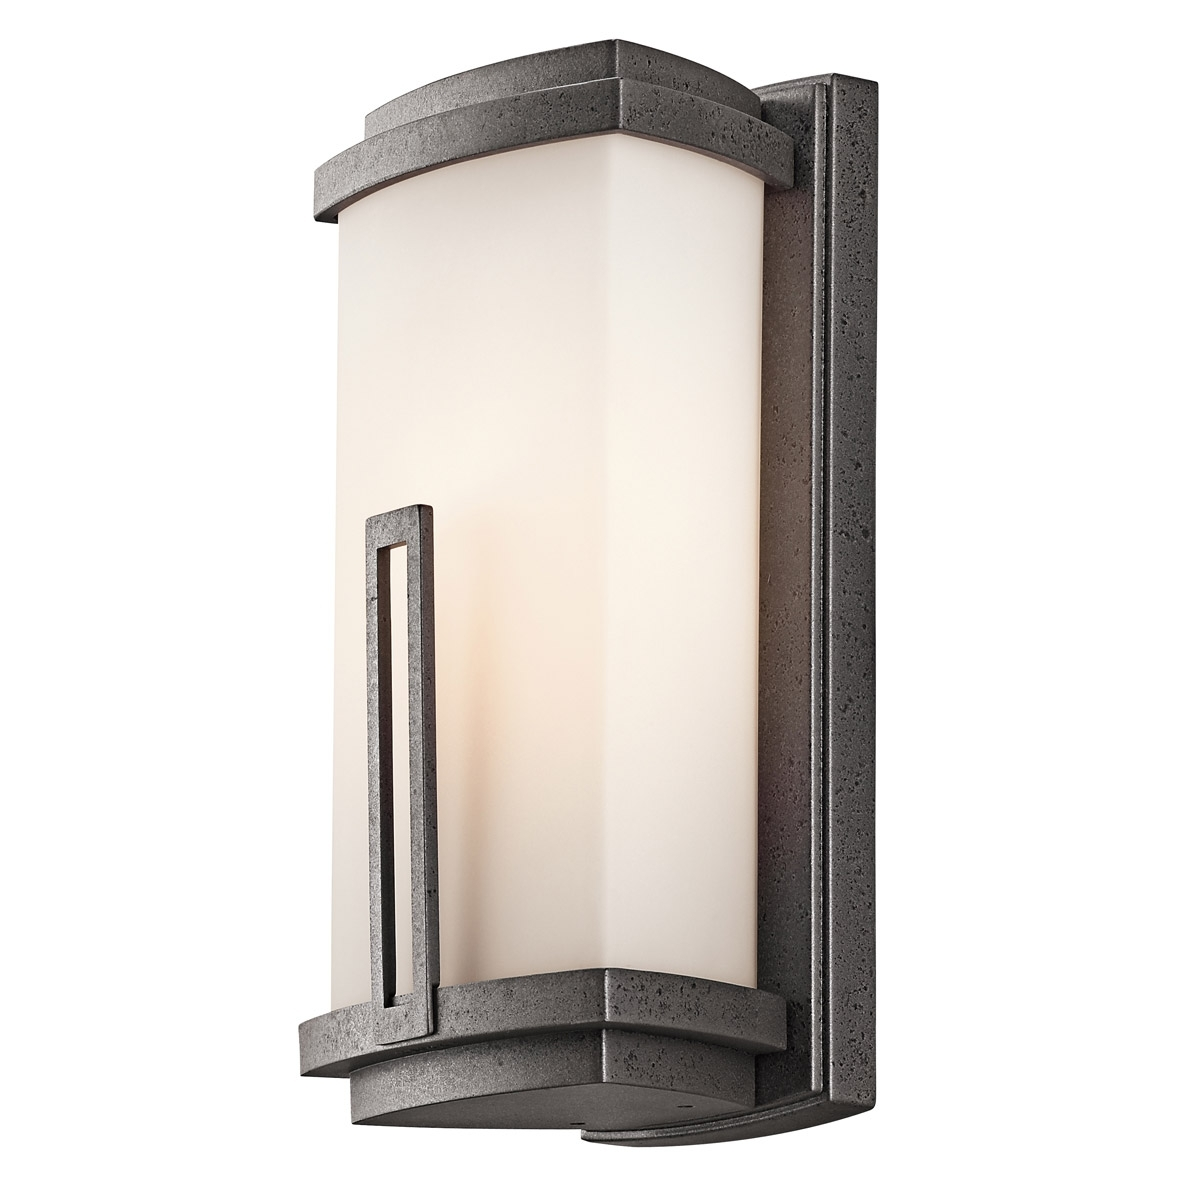 Fashionable Kichler Lighting Outdoor Wall Lanterns Intended For 49110avi Leeds Outdoor Wall Sconce (View 10 of 20)